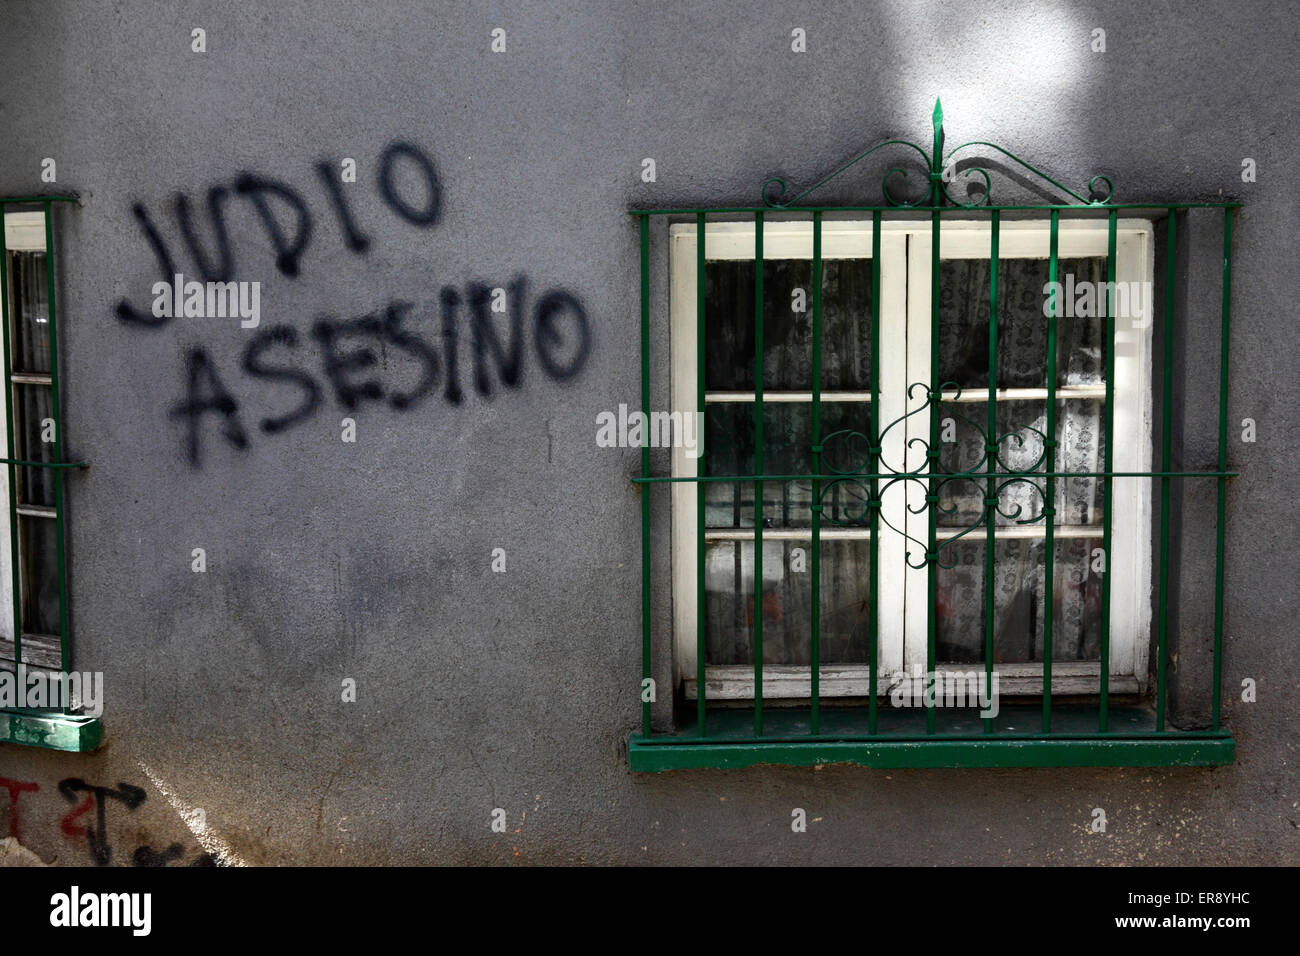 Judio Asesino / Killer Jew graffiti painted on a house in protest against Israeli military offensive in Gaza, La - Stock Image